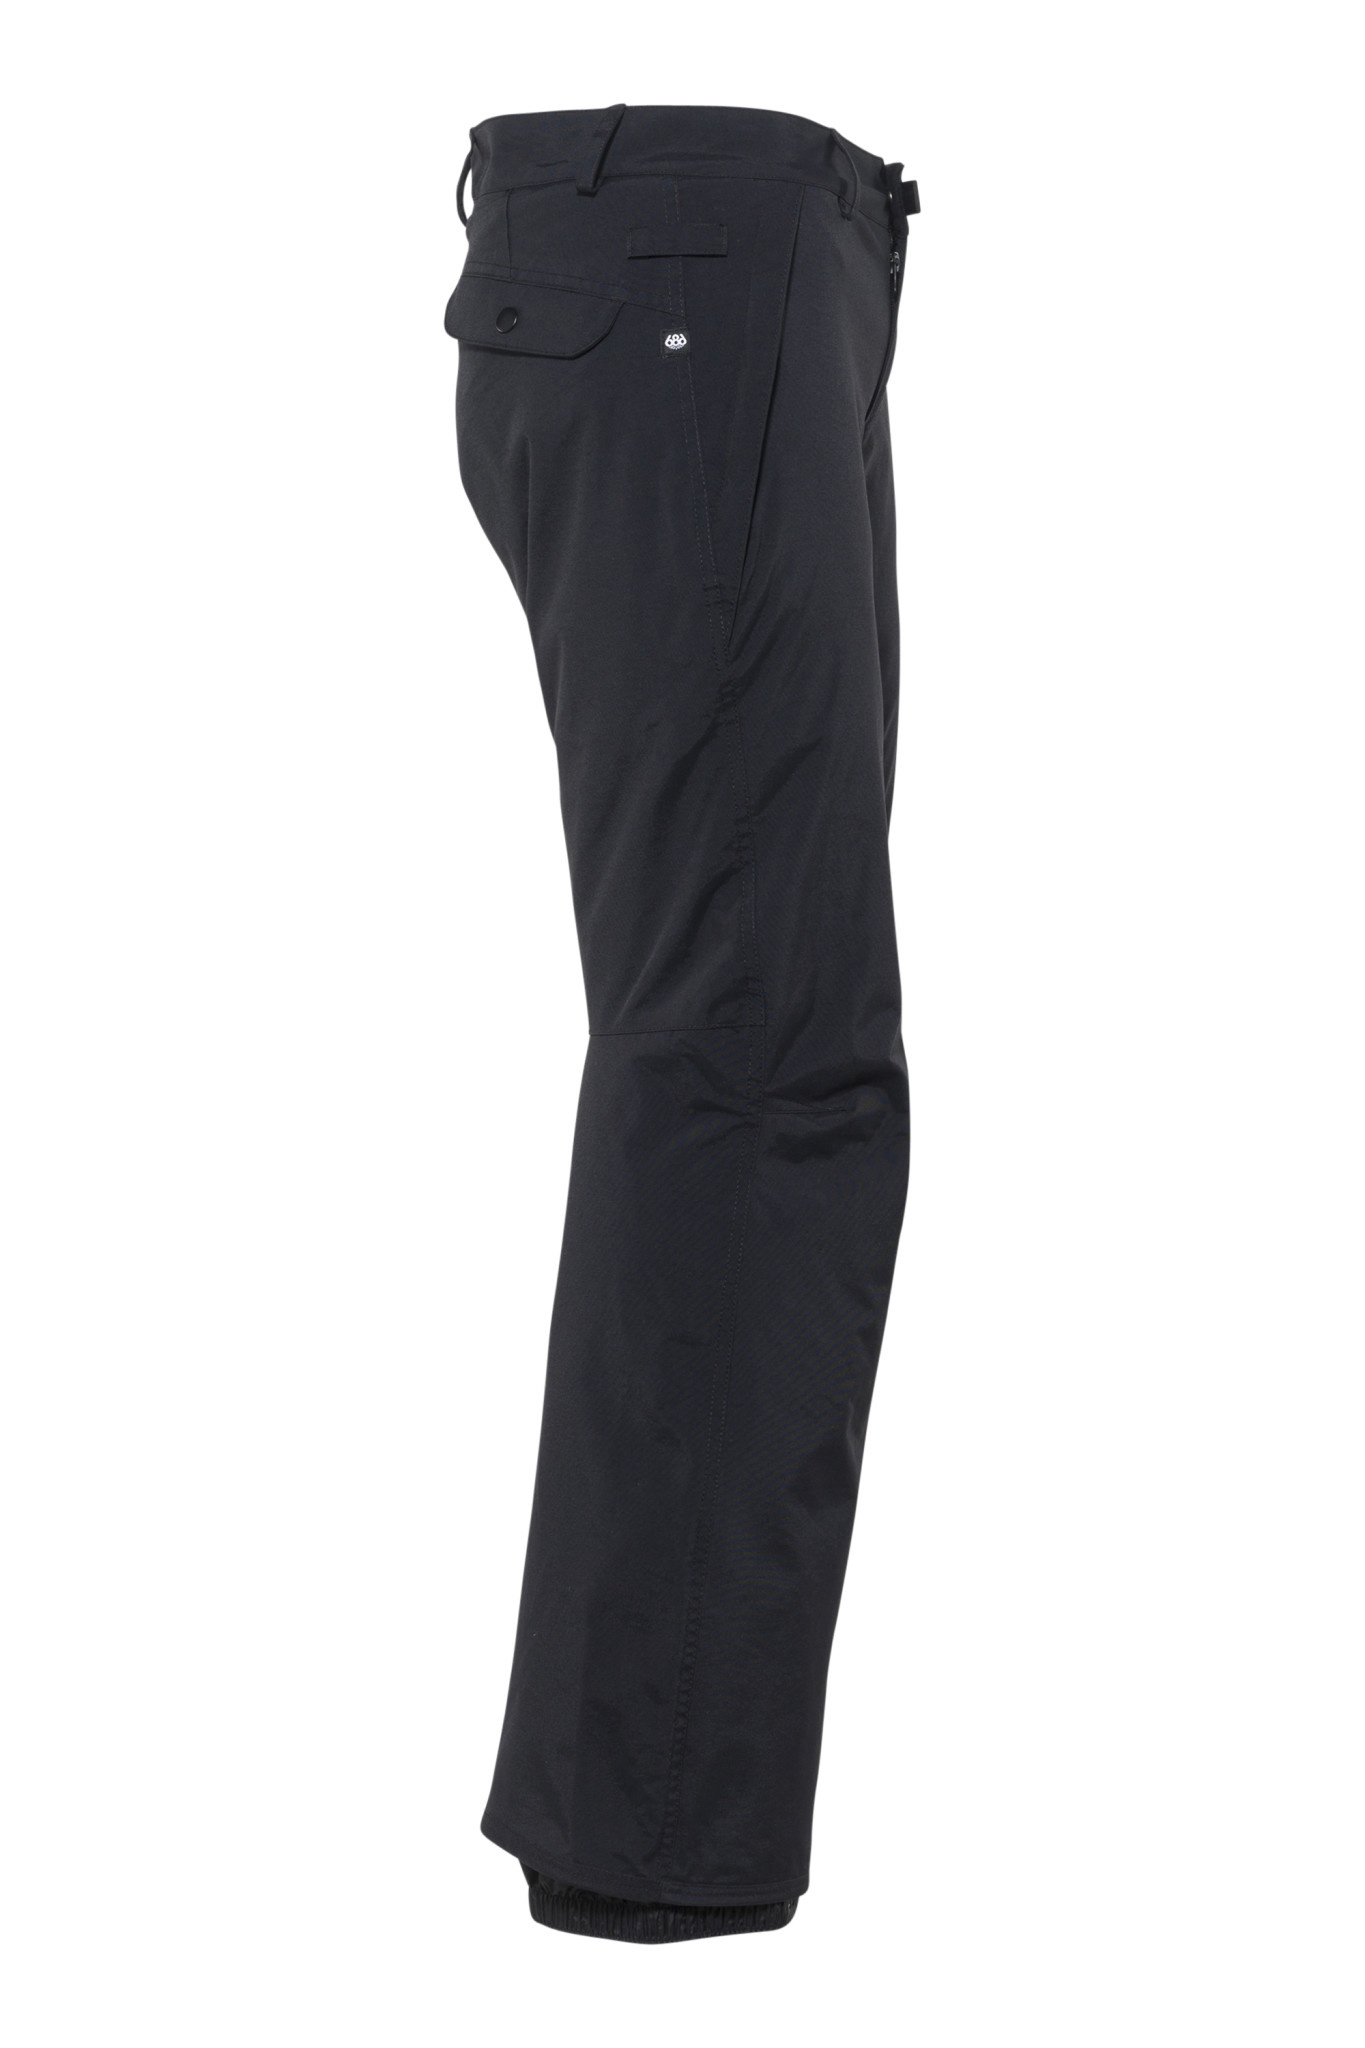 686 686 Women's Insulated Snow Pant